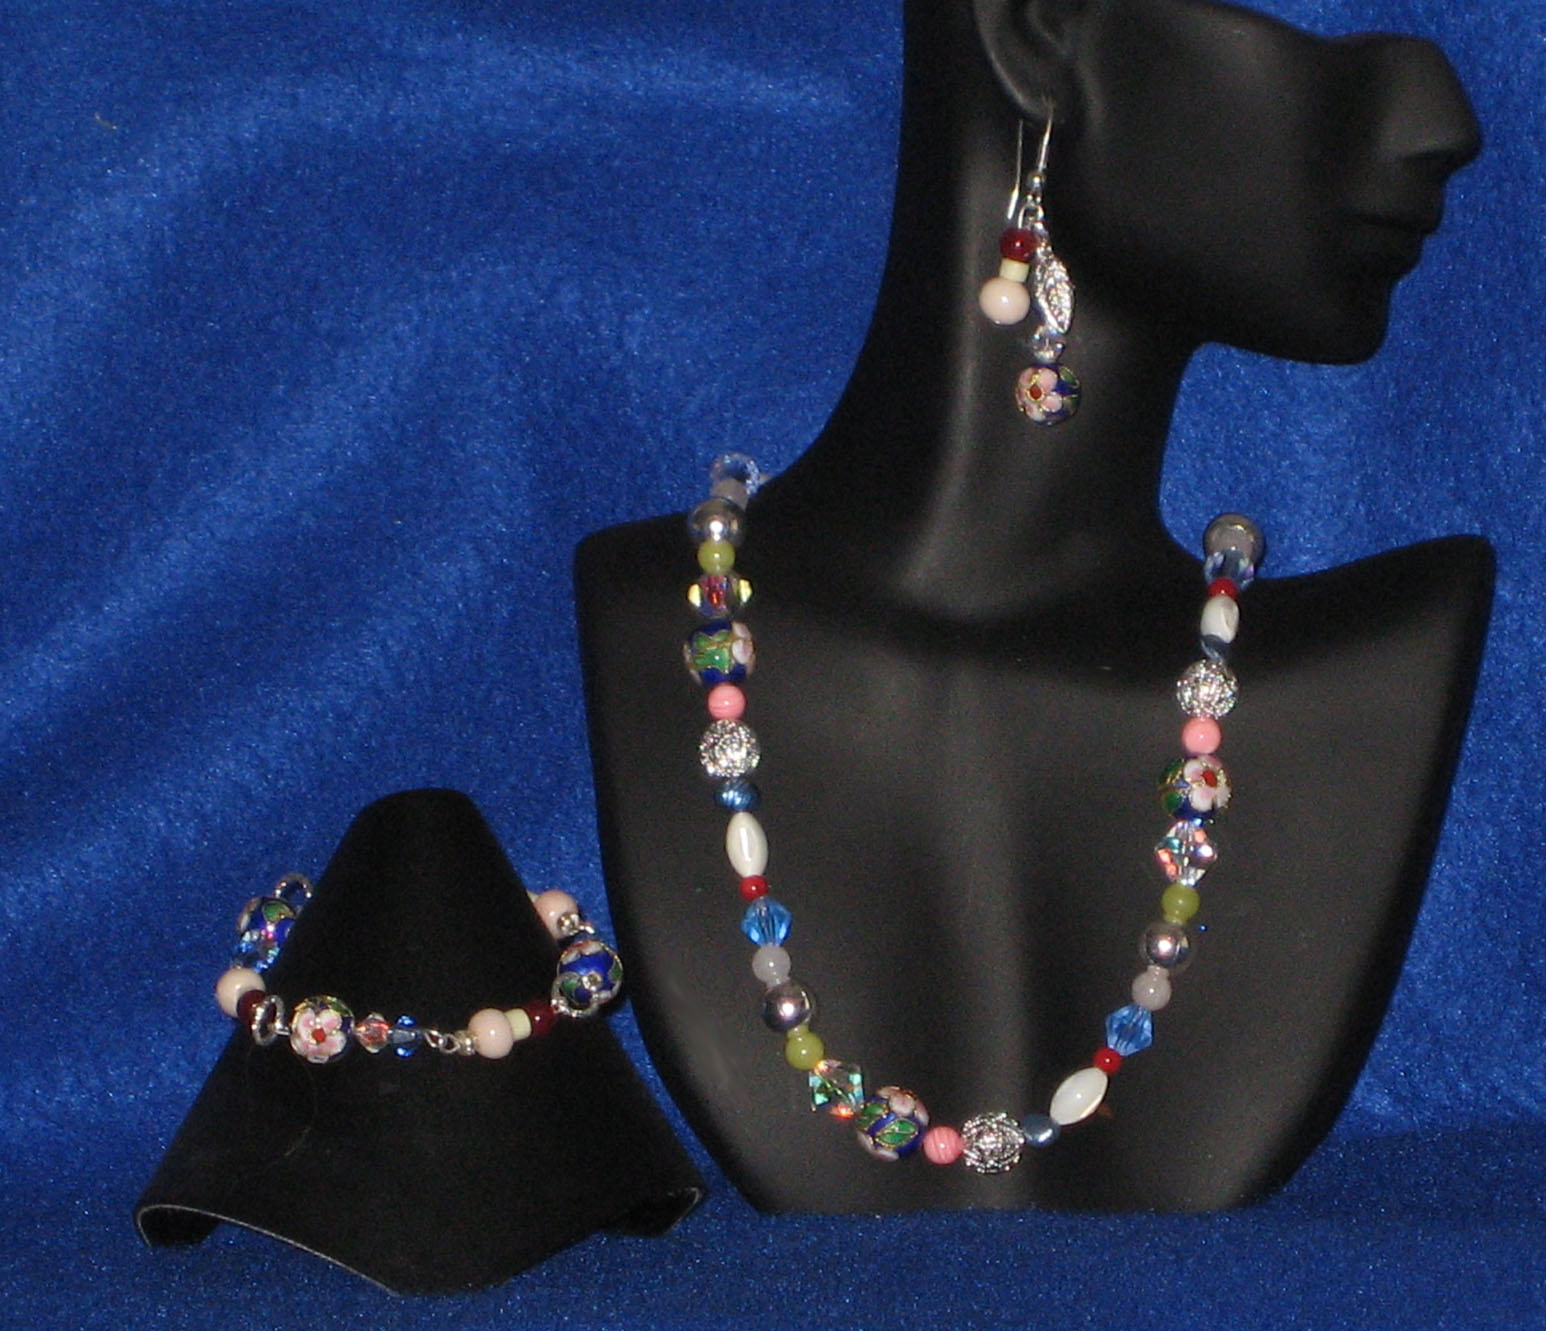 Necklace and Earrings Black Crystal /& Metallic Jewelry Set Monak by MJDesigns